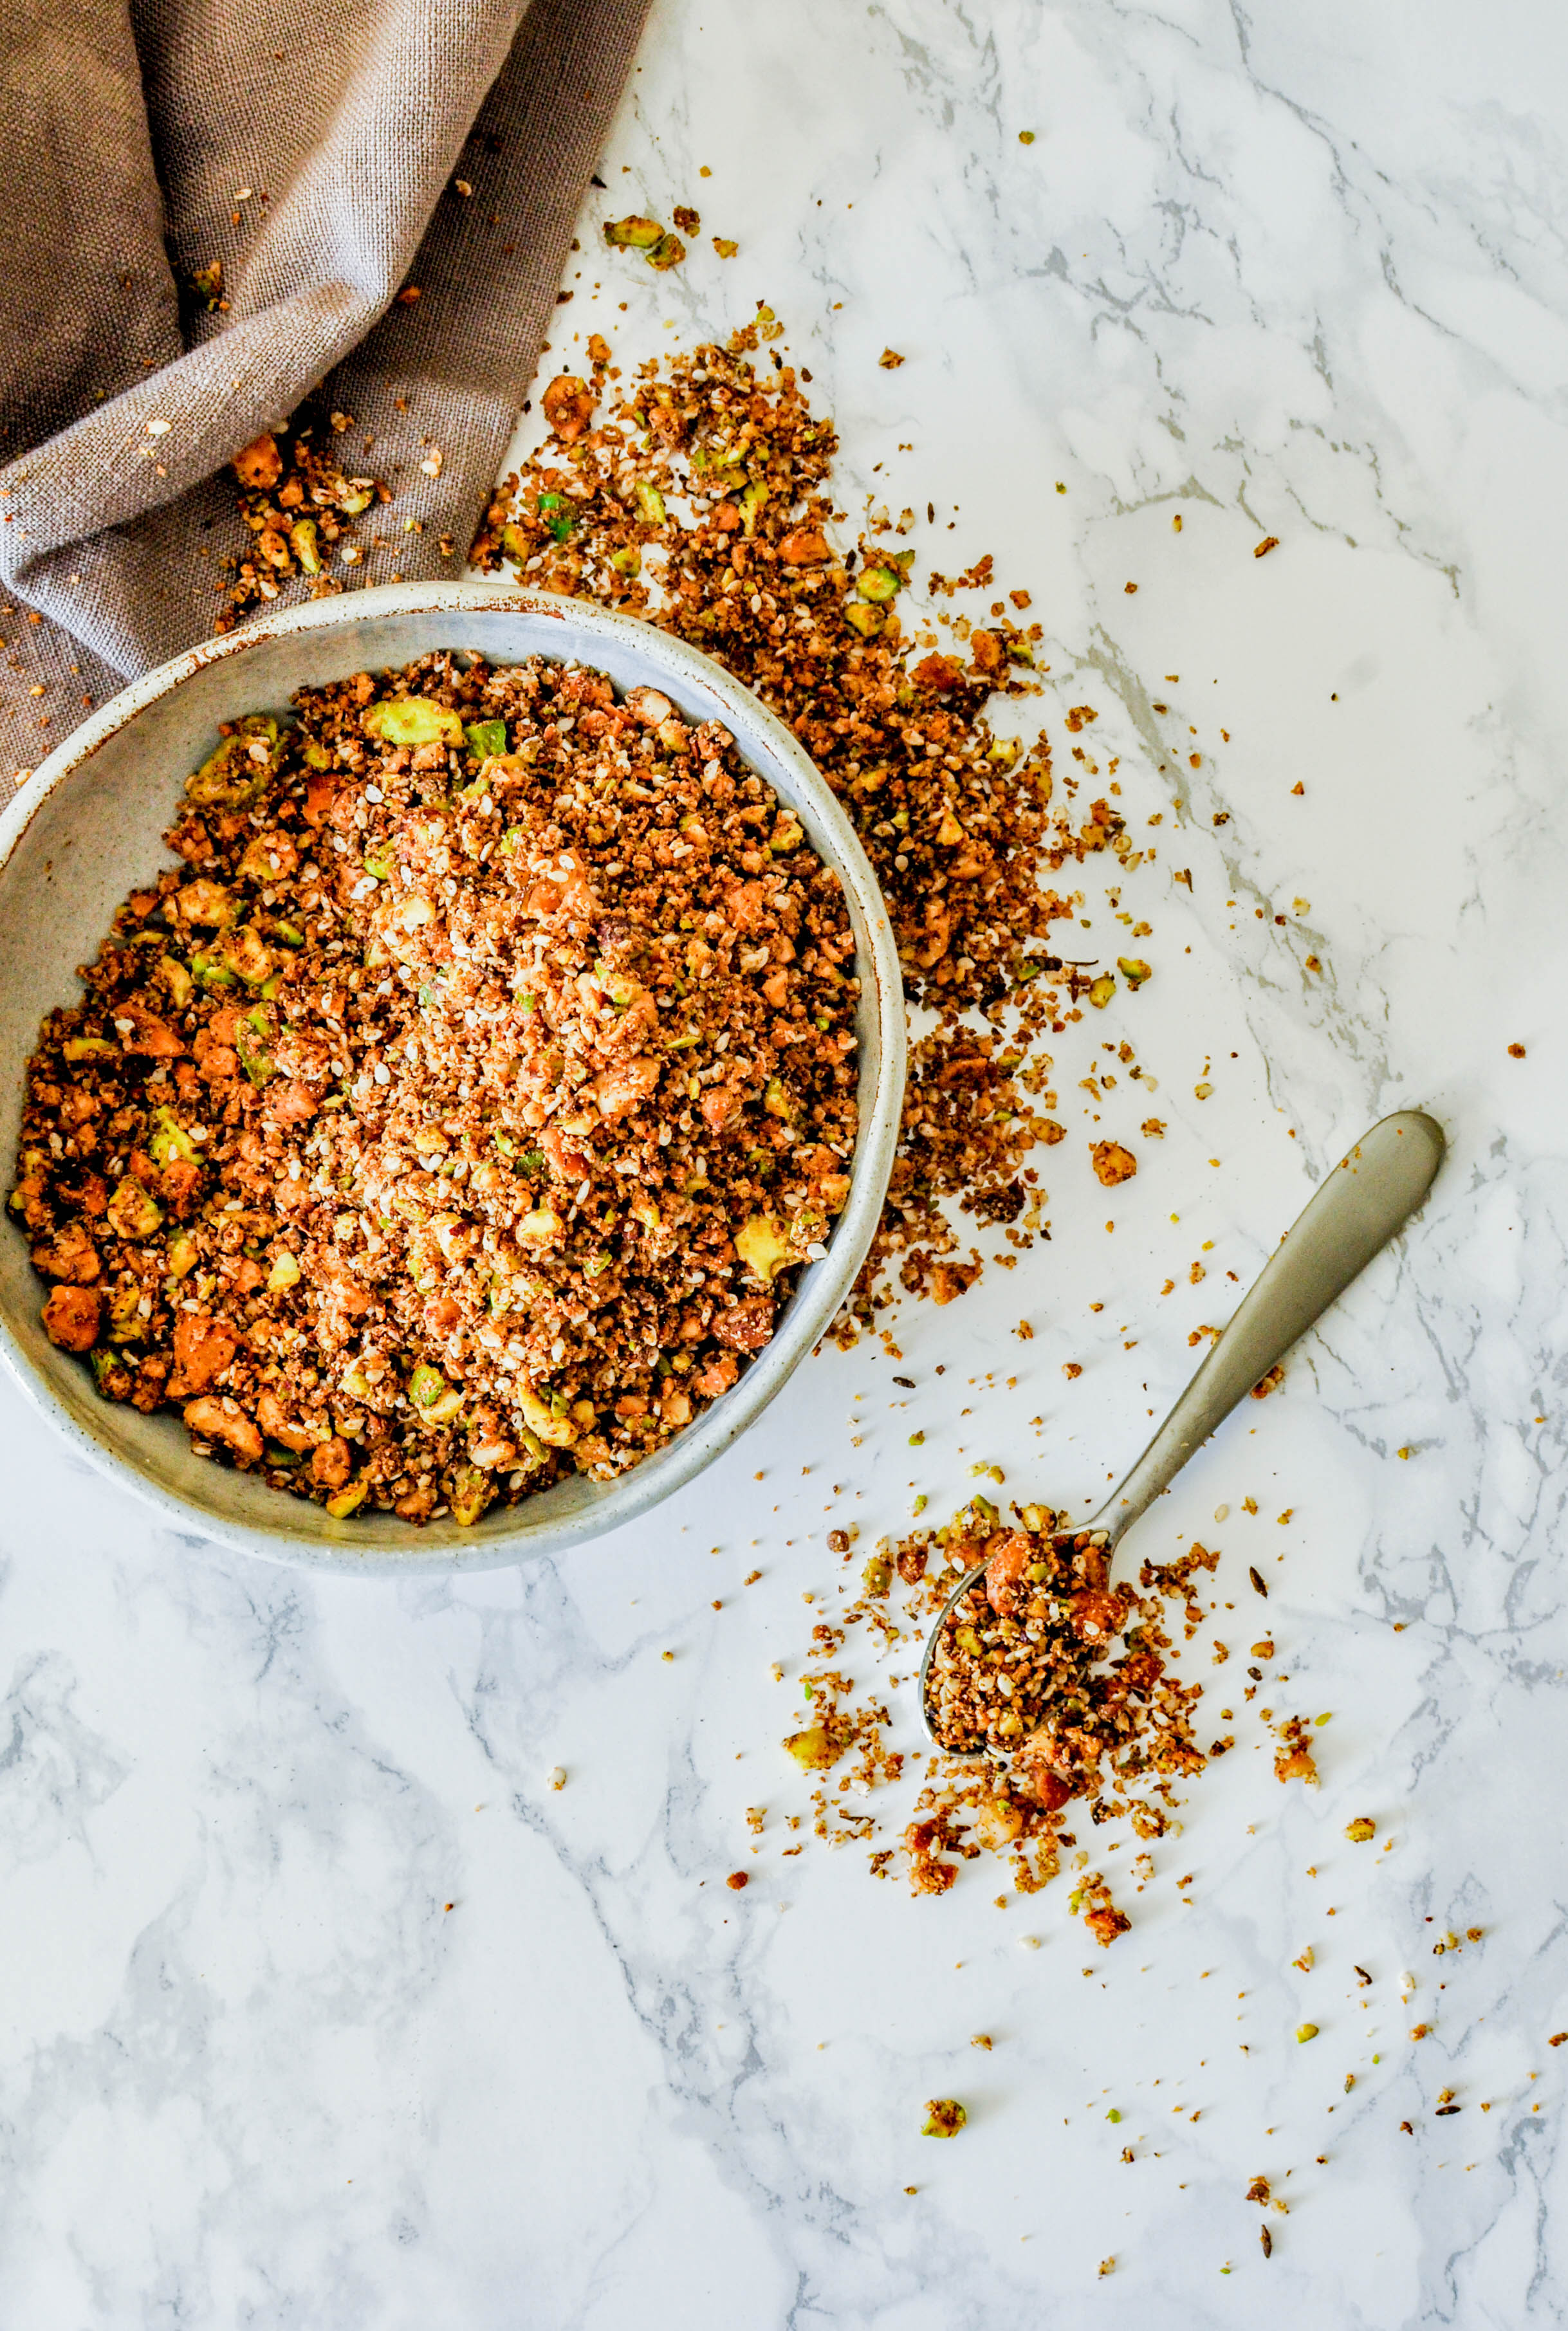 """Dukkah, in Arabic, means """"to crush"""" or """"to blend"""". In Egypt, dukkah is used as an all-purpose spice and often families and vendors have their own blends. Because the seeds, spices, and nuts are crushed the meld together to create an aromatic blend. The versatile blend can be used as a rub on fish or meat, sprinkled on salad, or stirred into a dip (hummus, yogurt, or muttabel) to add some complexity."""